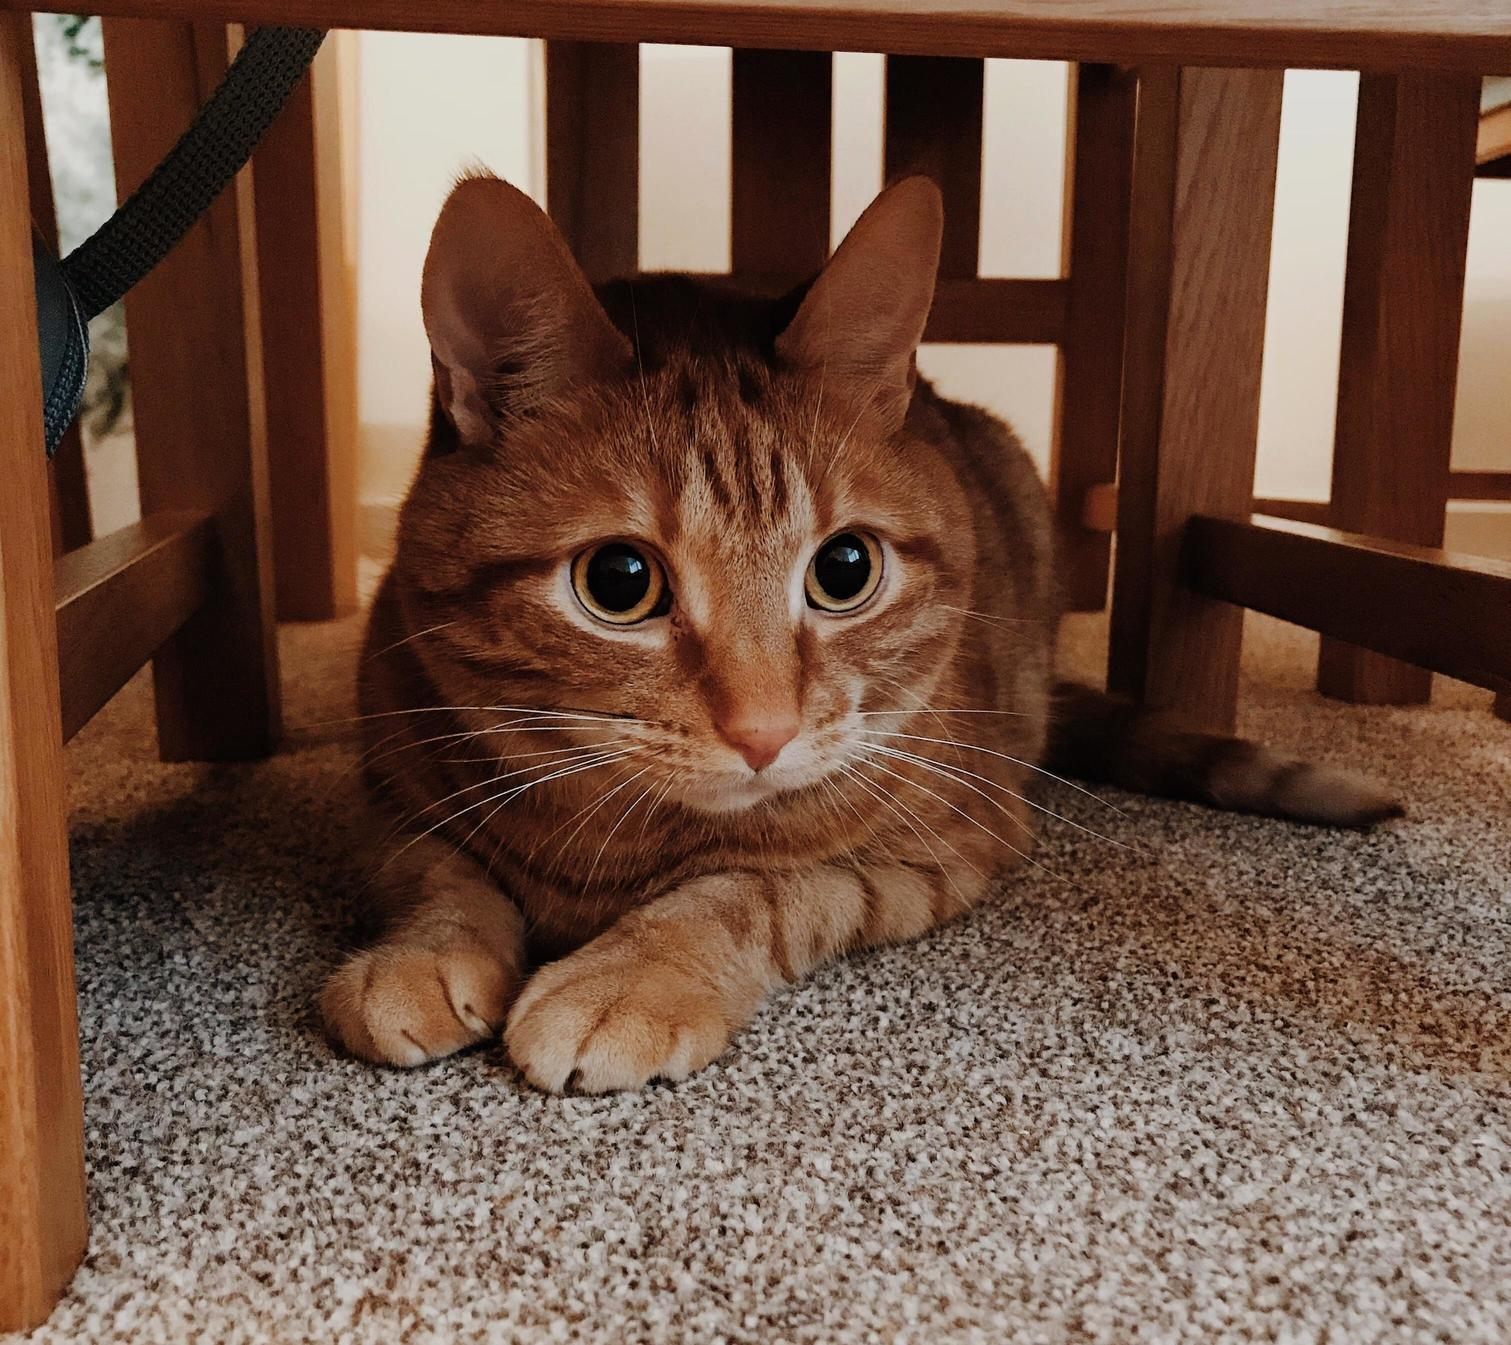 Watching a shoelace intently from his hiding spot under the table